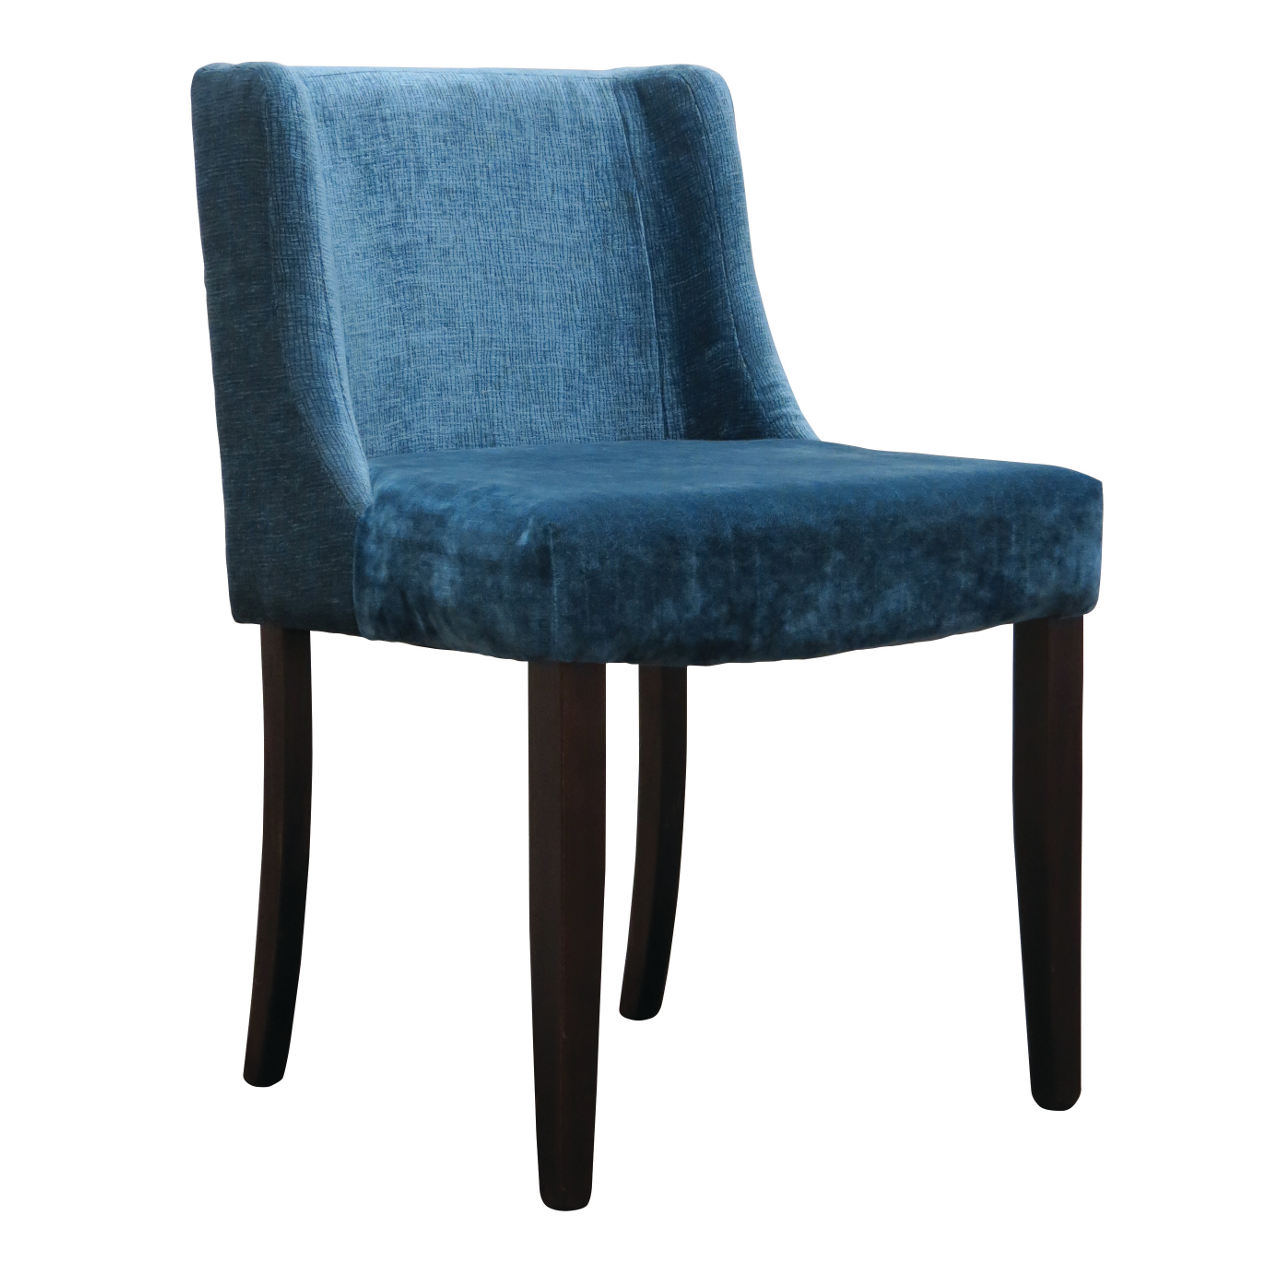 Rome side chair